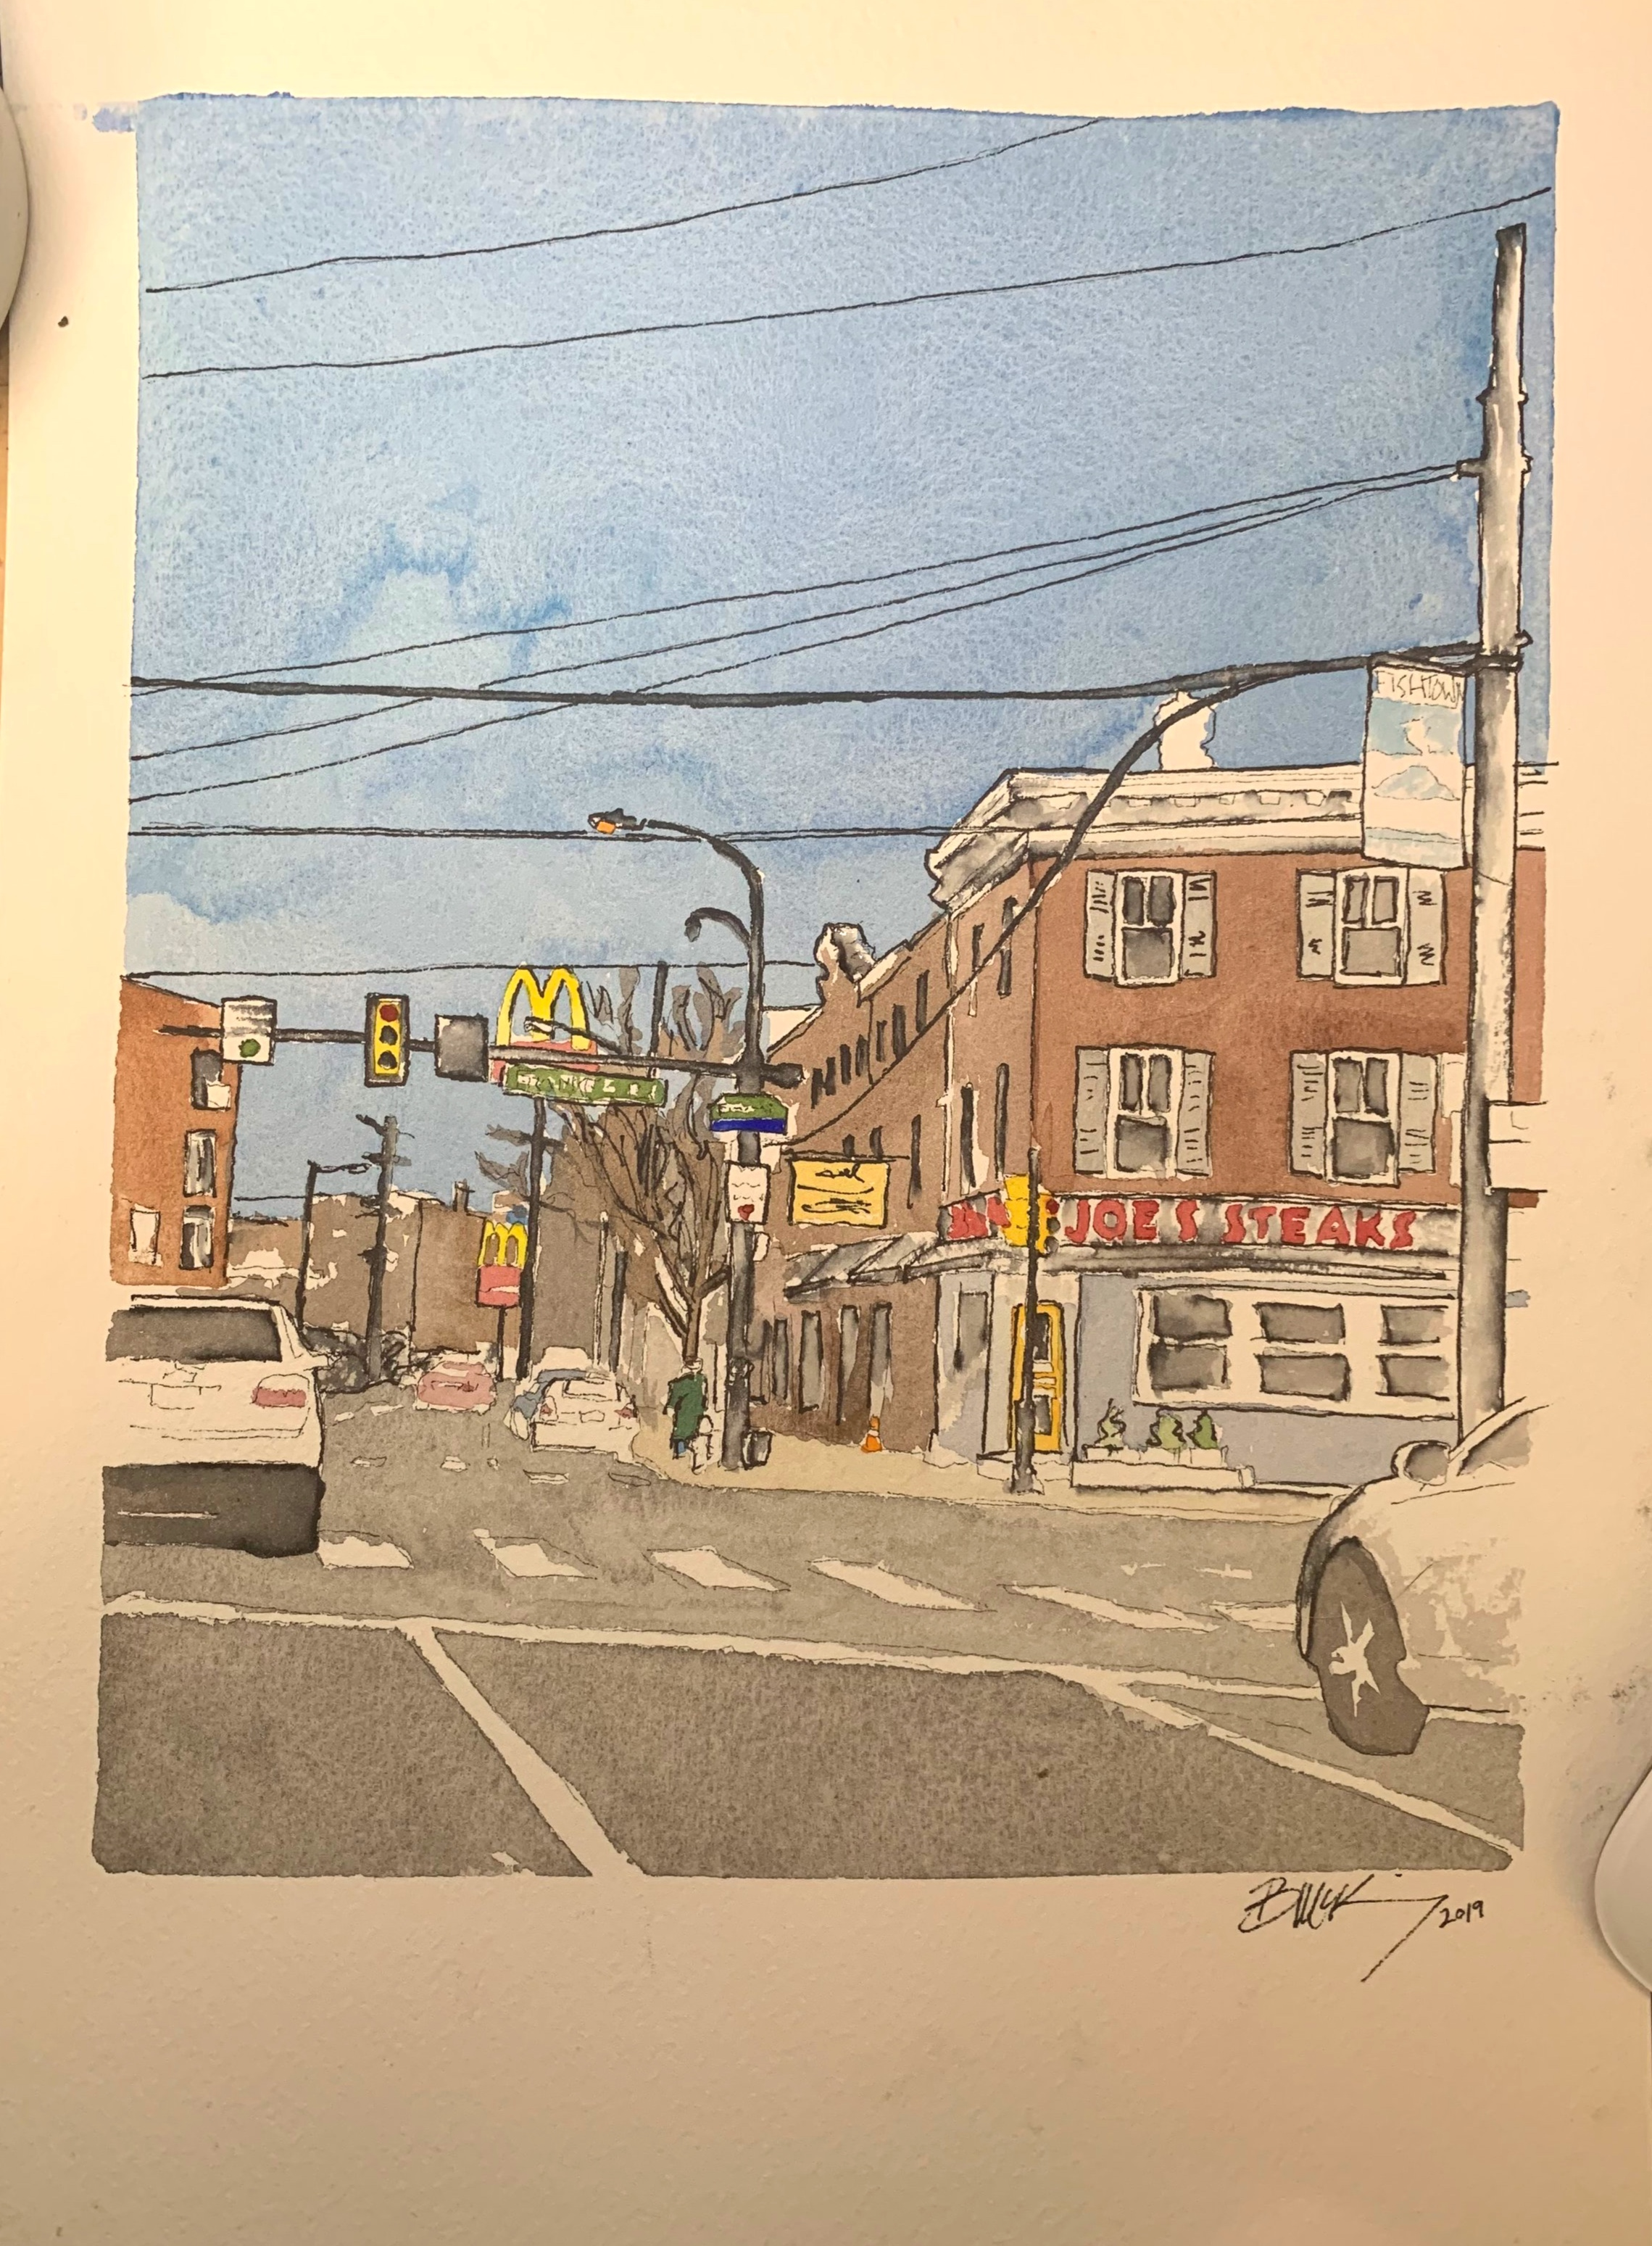 Girard and Frankford, 9x12 inches, Watercolor and Pen on 140lb. March 2019